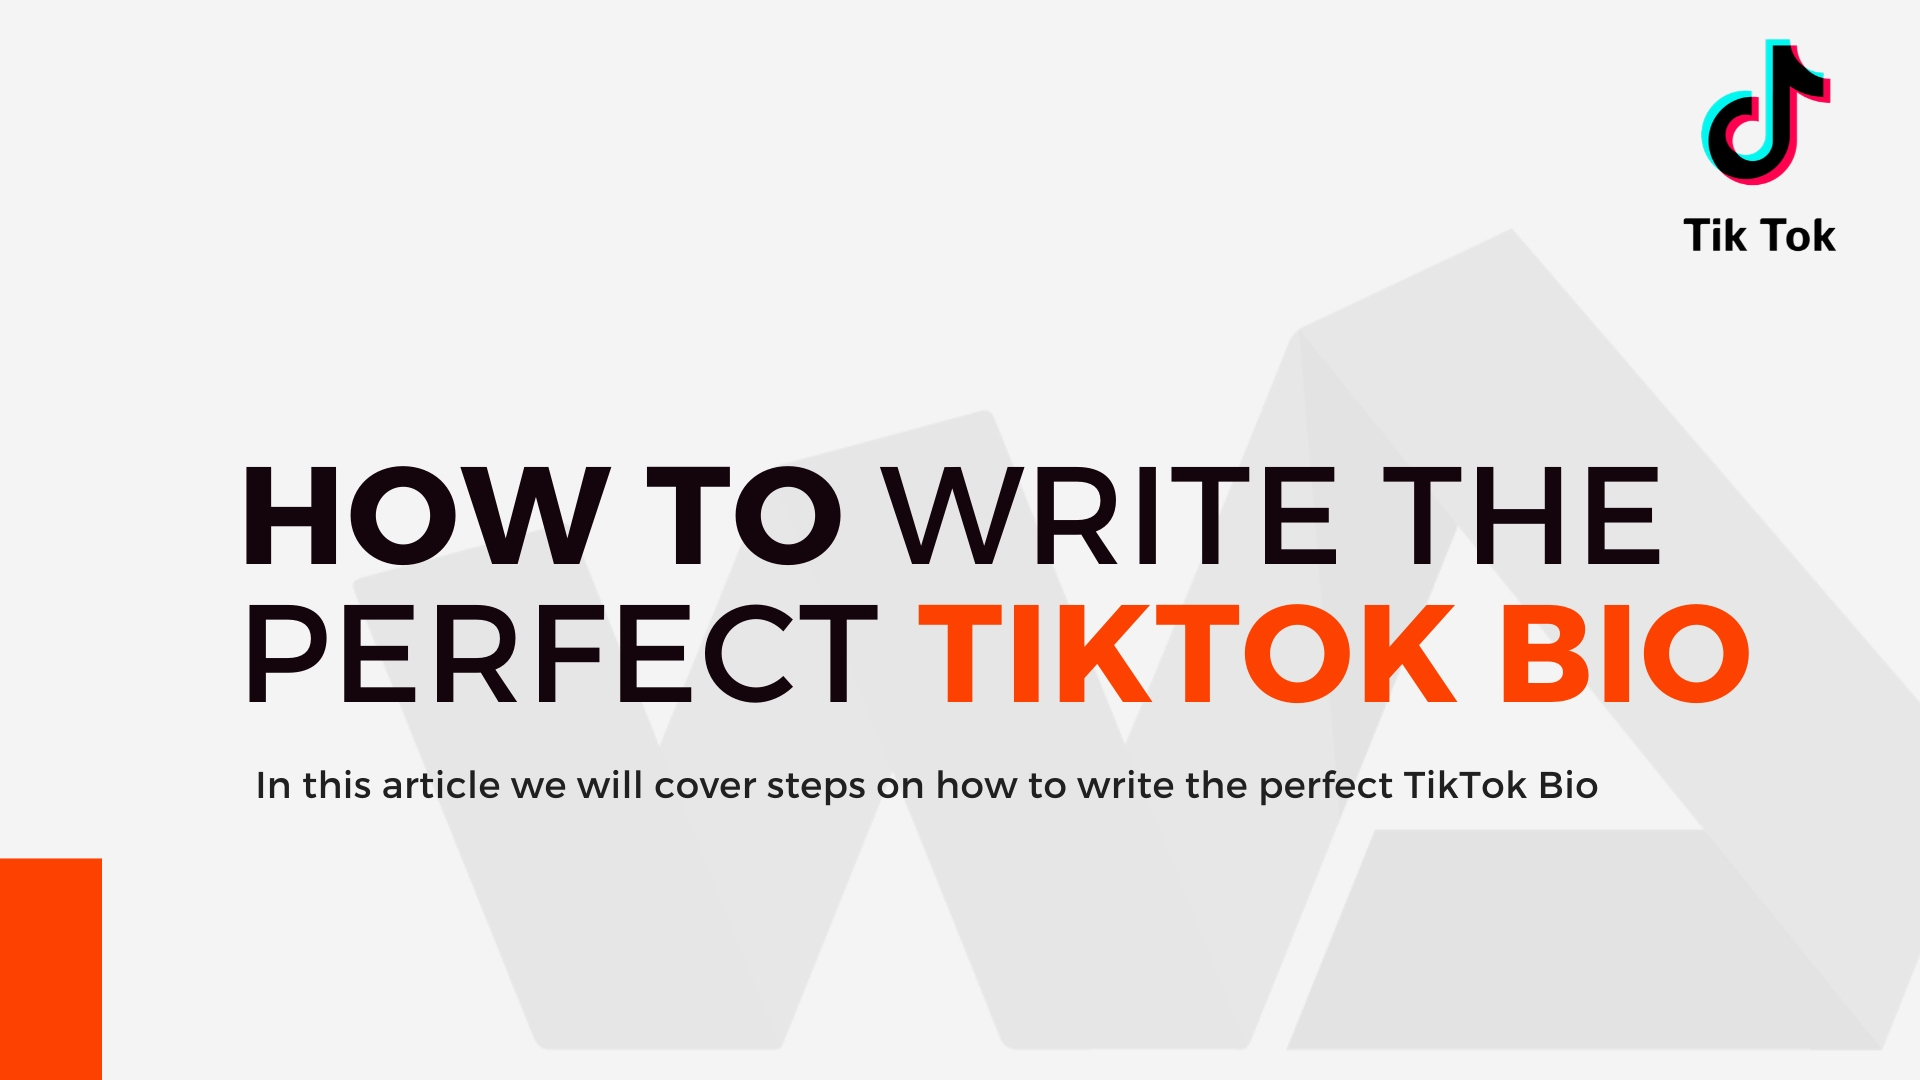 Tips For Writing Killer Bio For More TikTok Followers